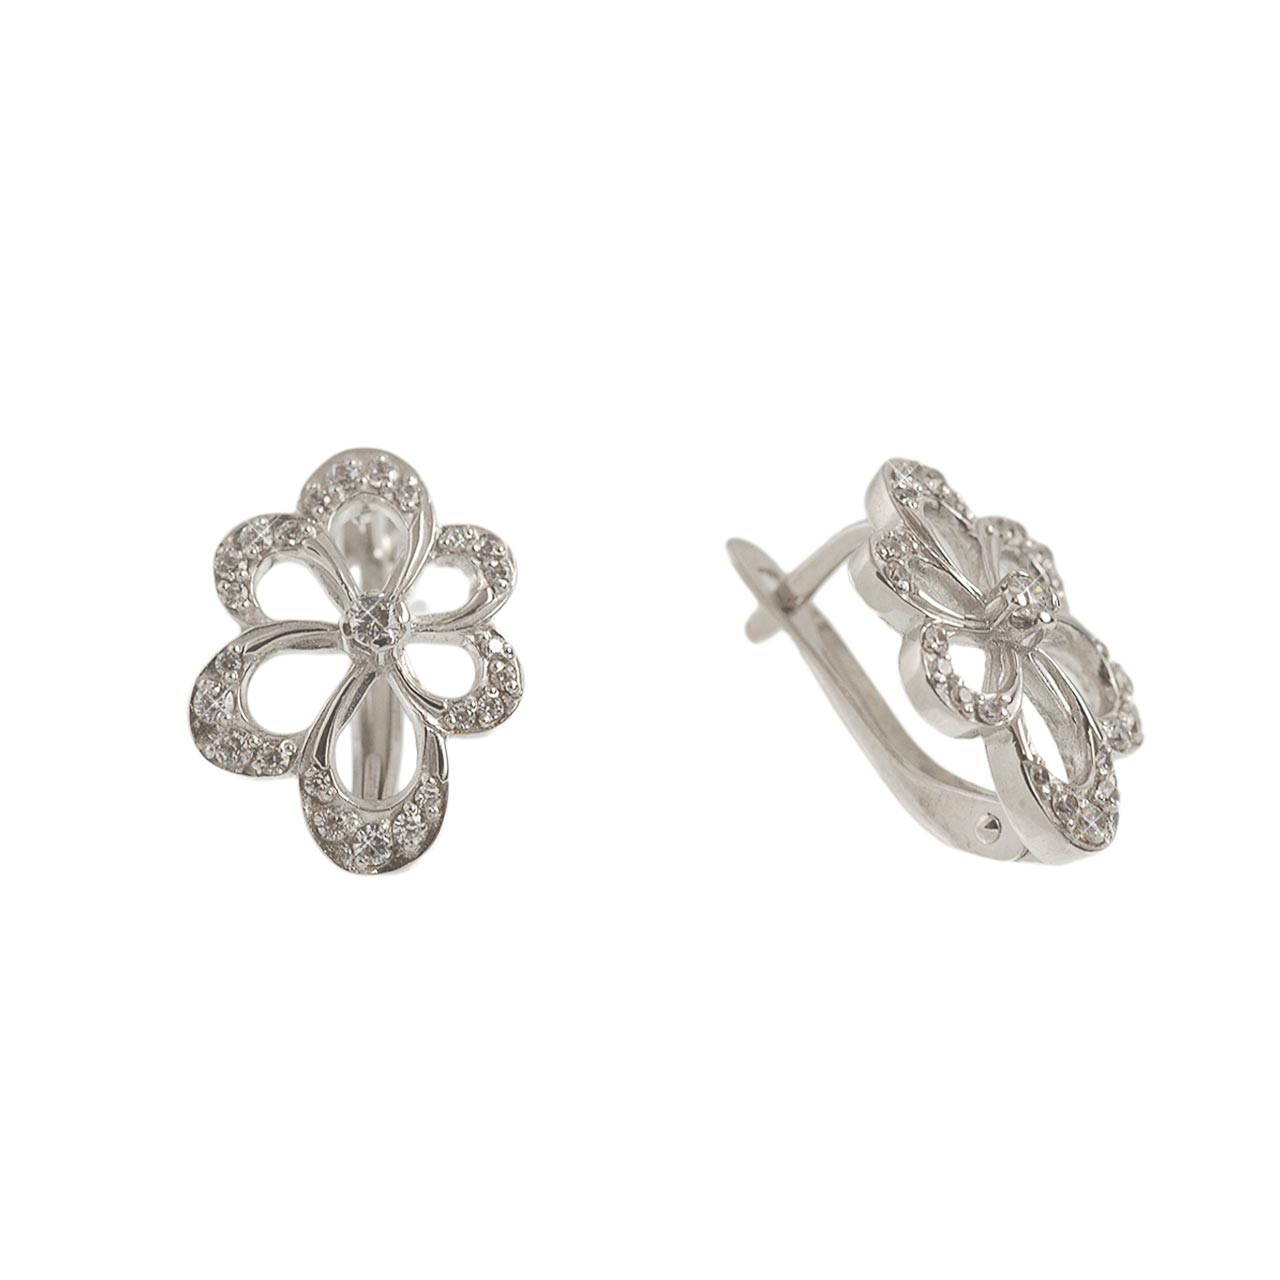 Lever-back white gold earrings 1